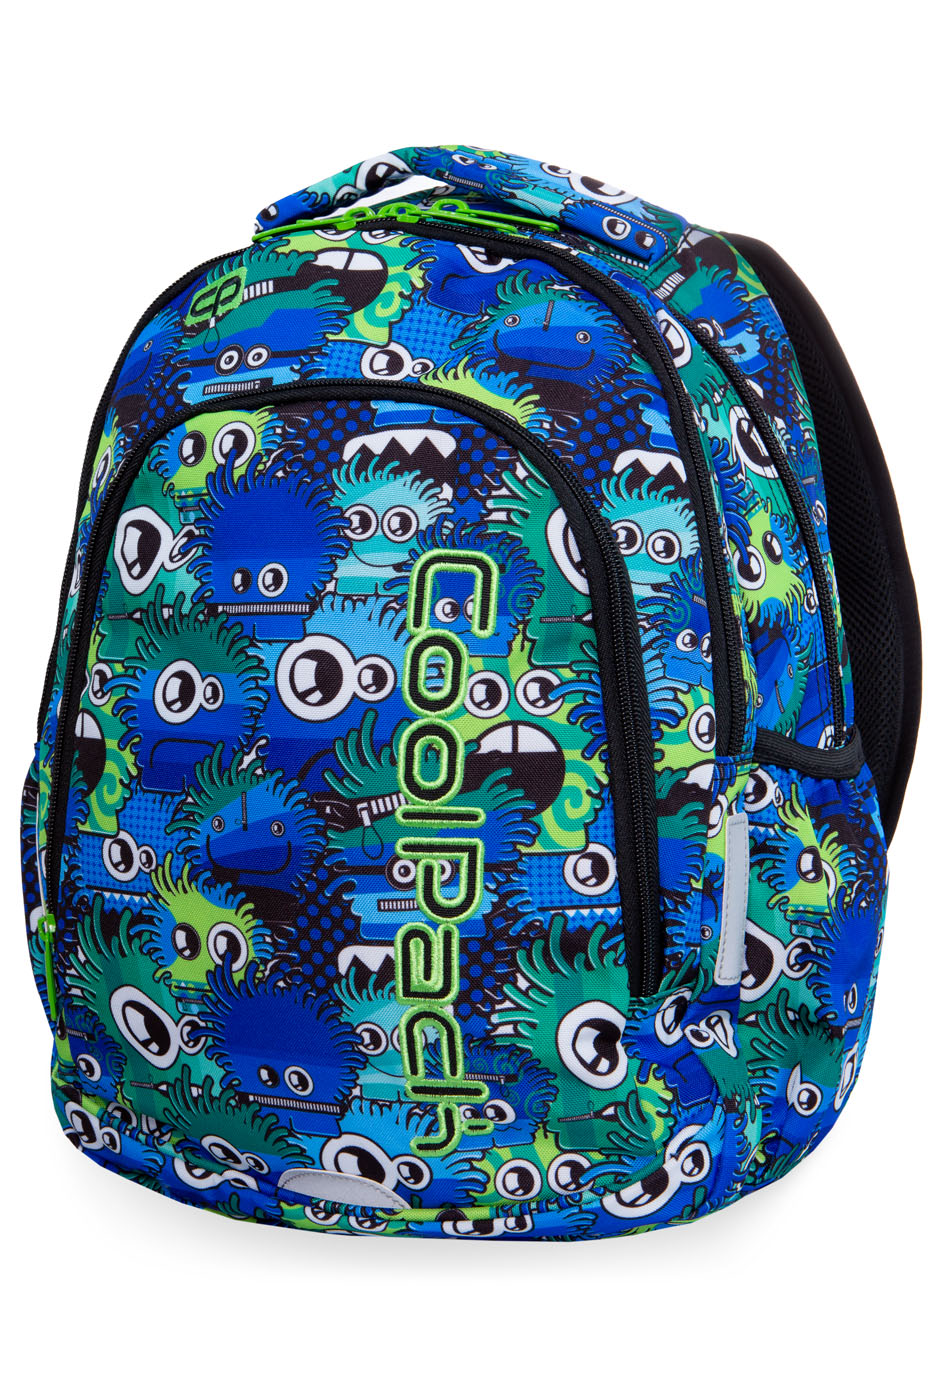 Coolpack - prime - youth backpack - wiggly eyes blue